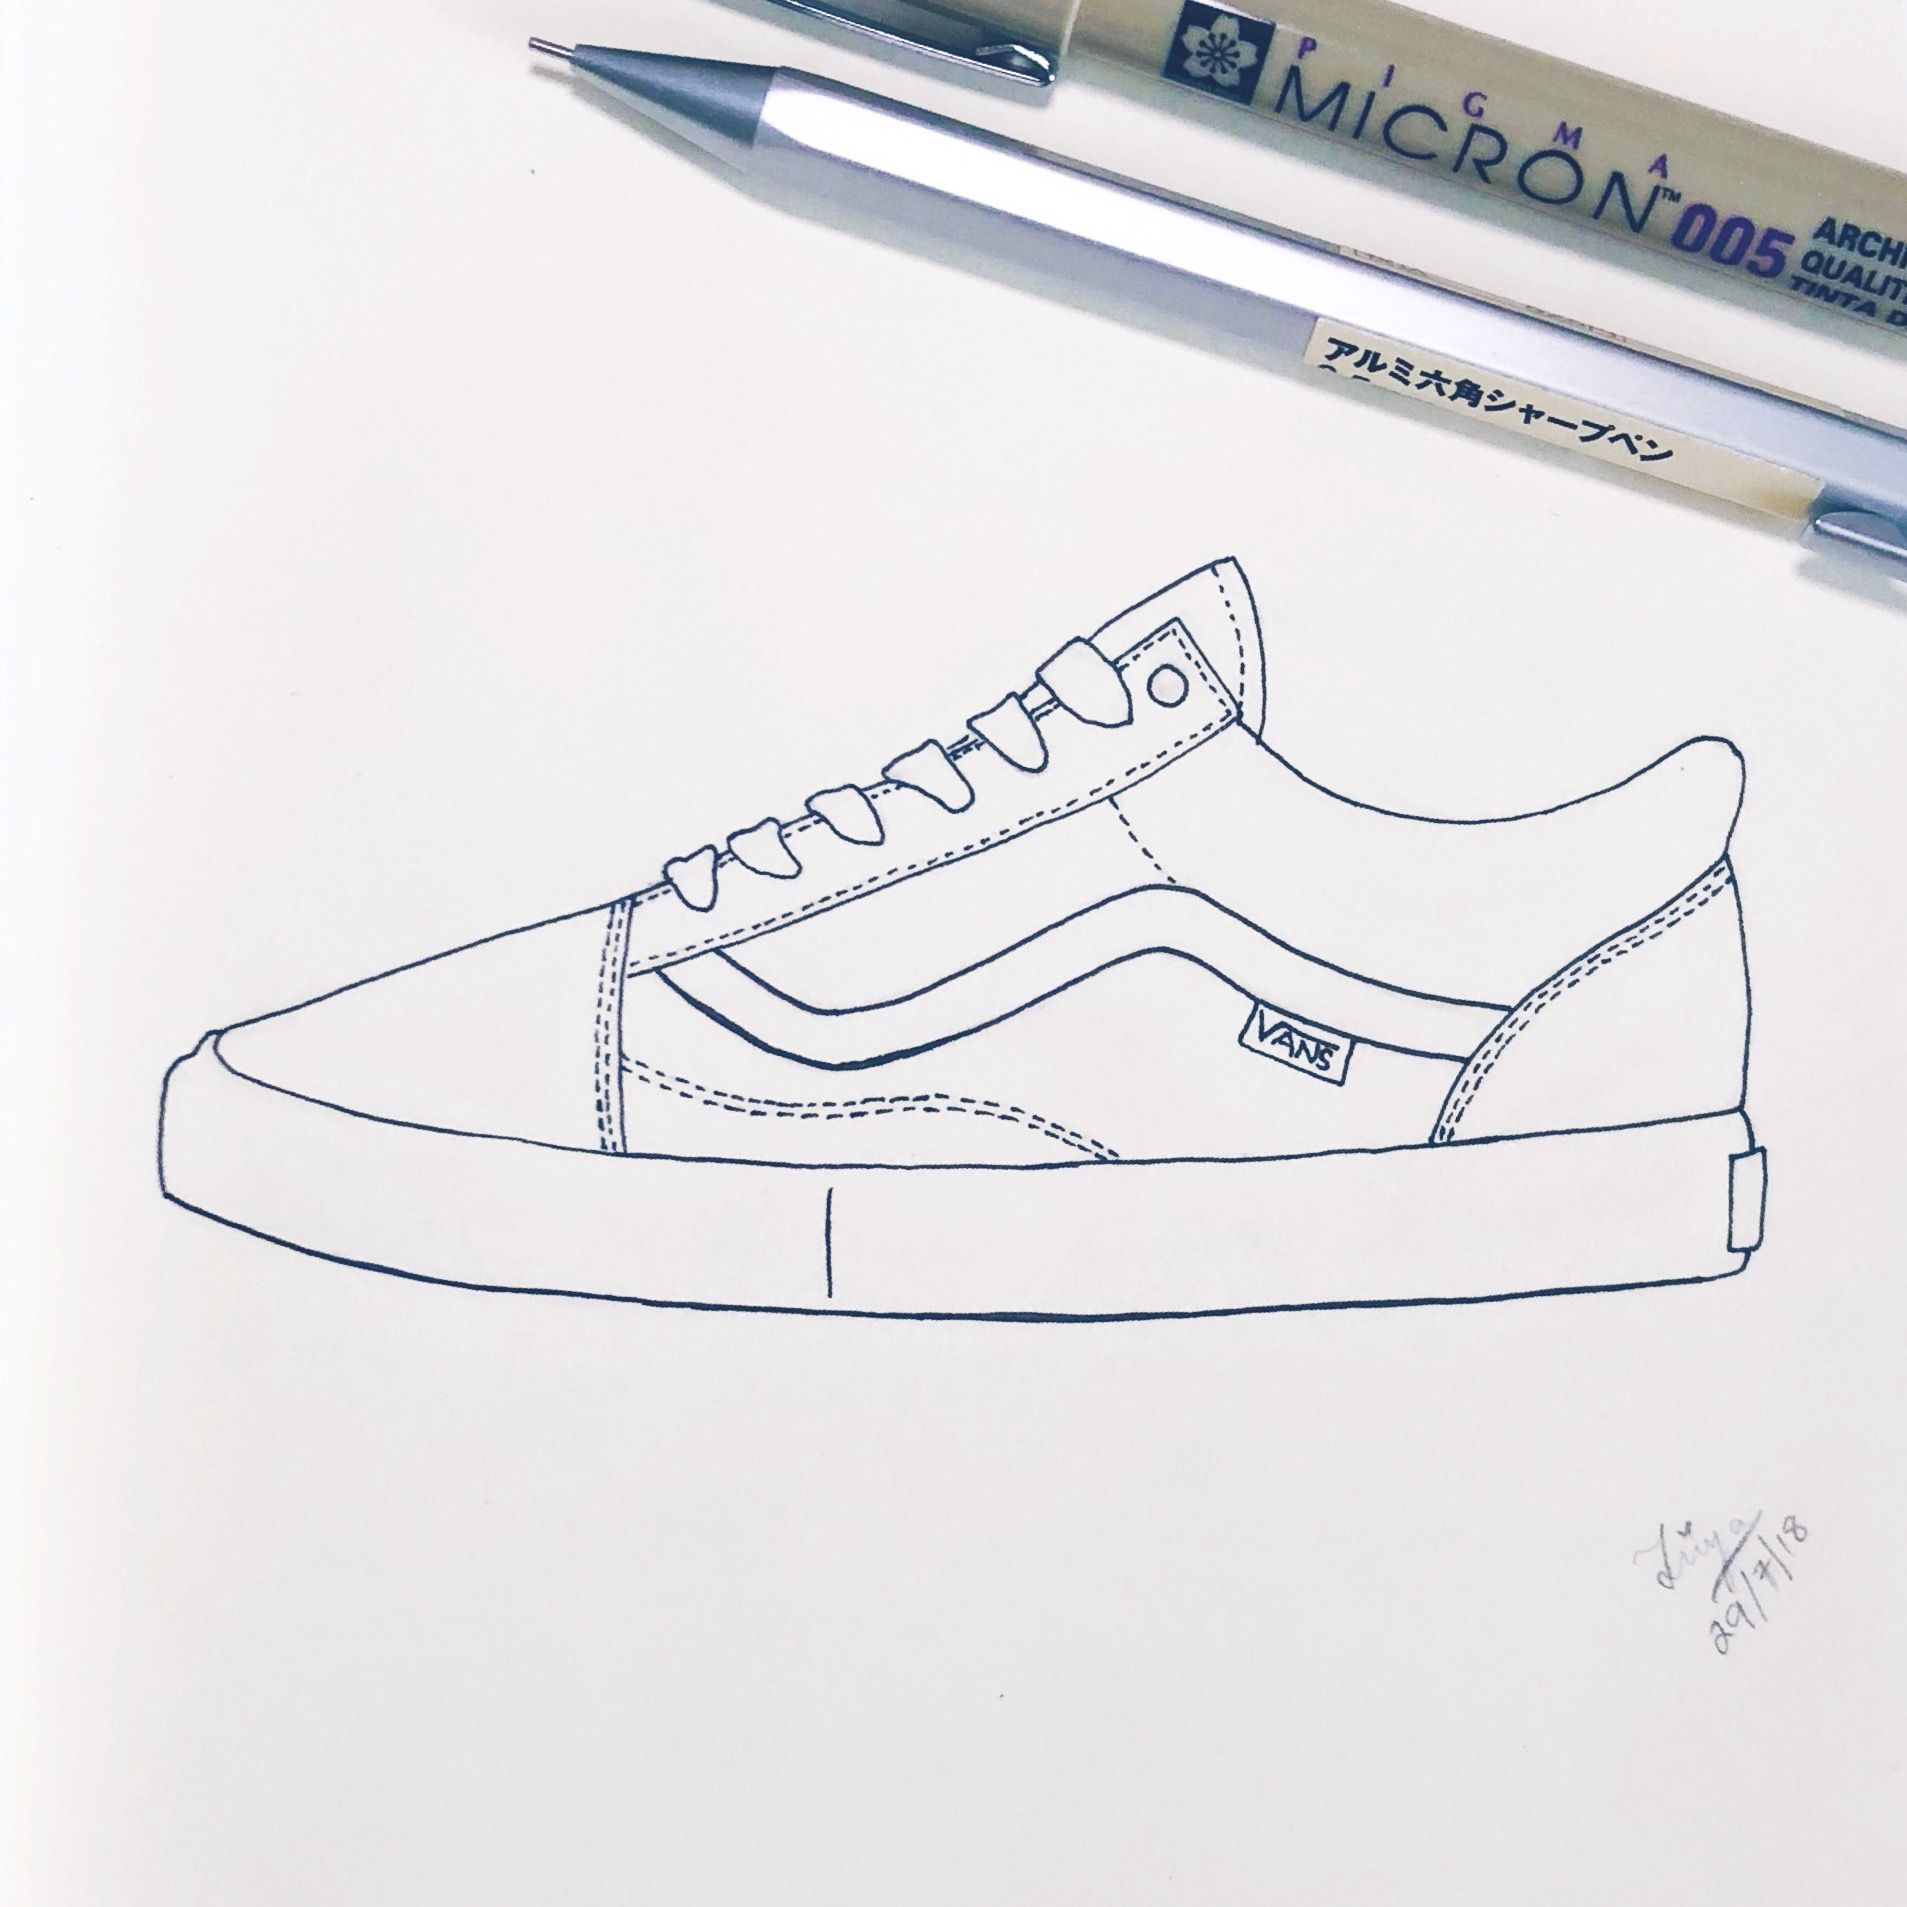 Another favorite shoe sketch. Loved drawing this simple